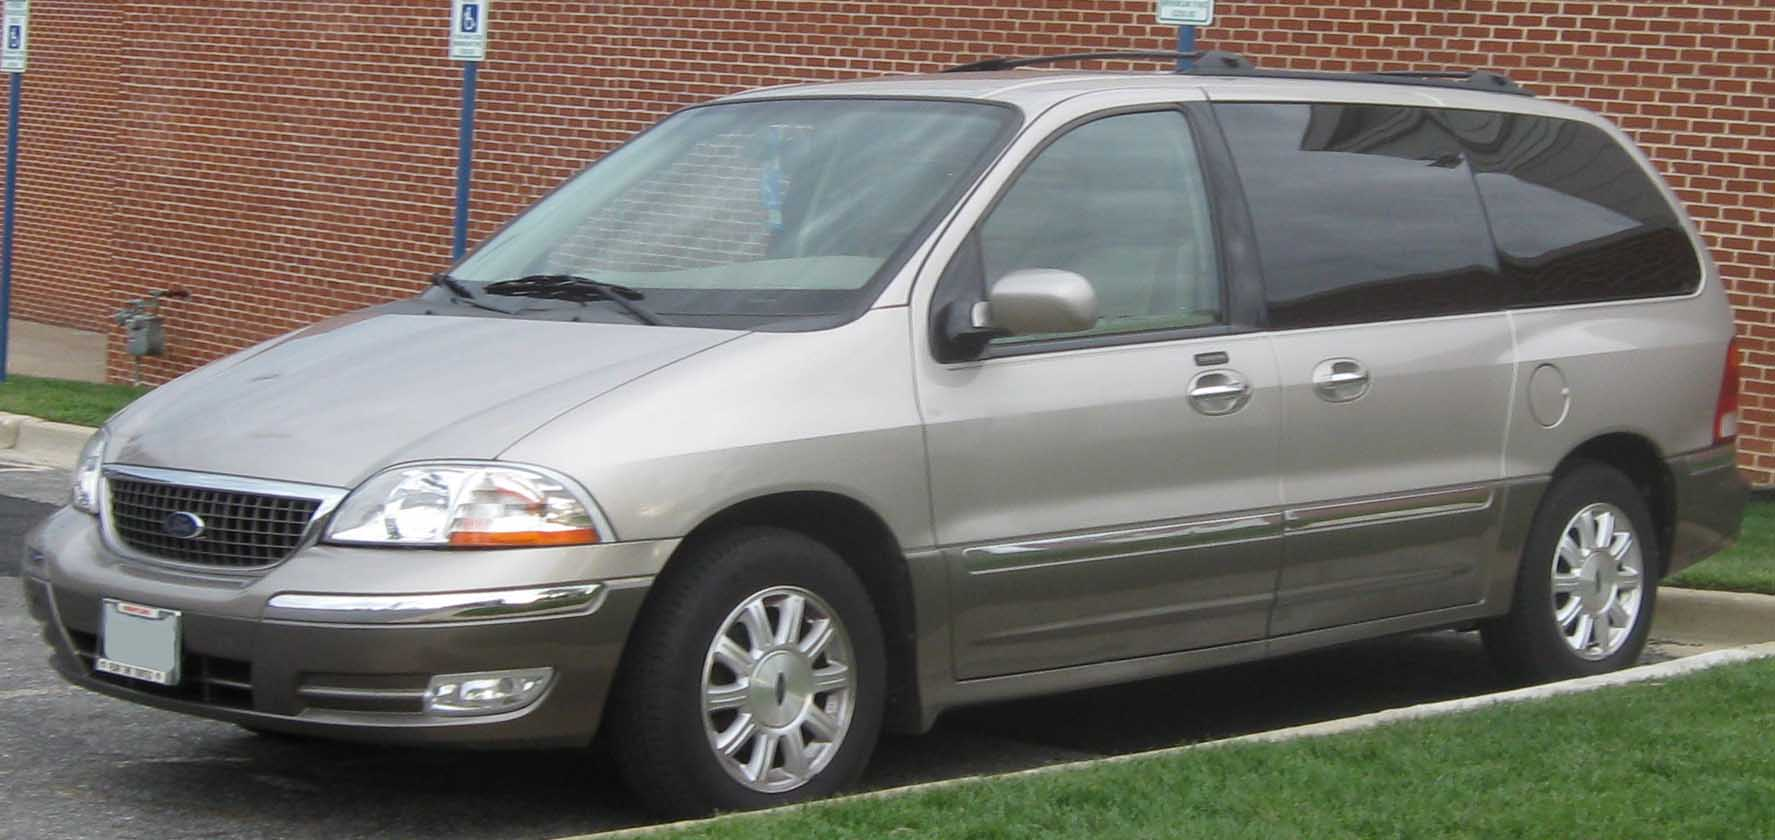 Marvelous Ford Windstar Wikipedia Inzonedesignstudio Interior Chair Design Inzonedesignstudiocom